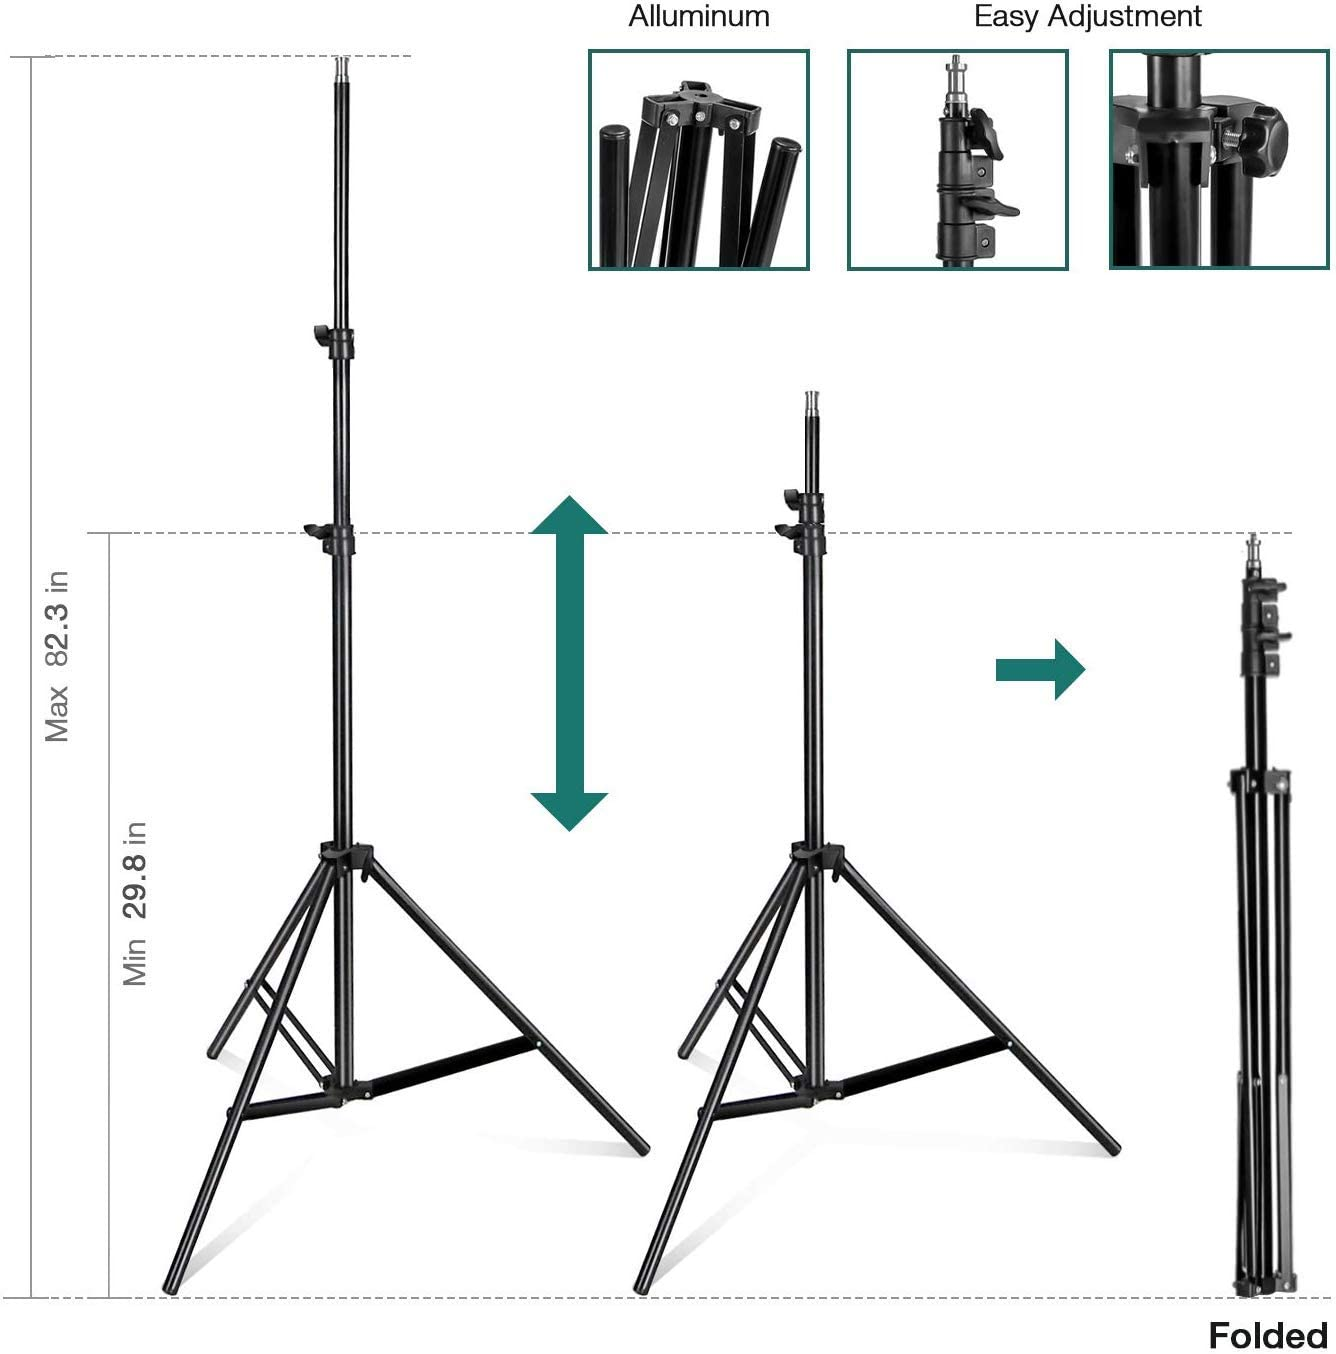 E27 CFL 105W 6500K Bulb and Light Stand for Photo Studio and Photo//Video Shooting Photography Studio Continuous 26 Octagonal Soft Box Lighting Light Kit with Photo E26 2Pack AGG3039 LimoStudio